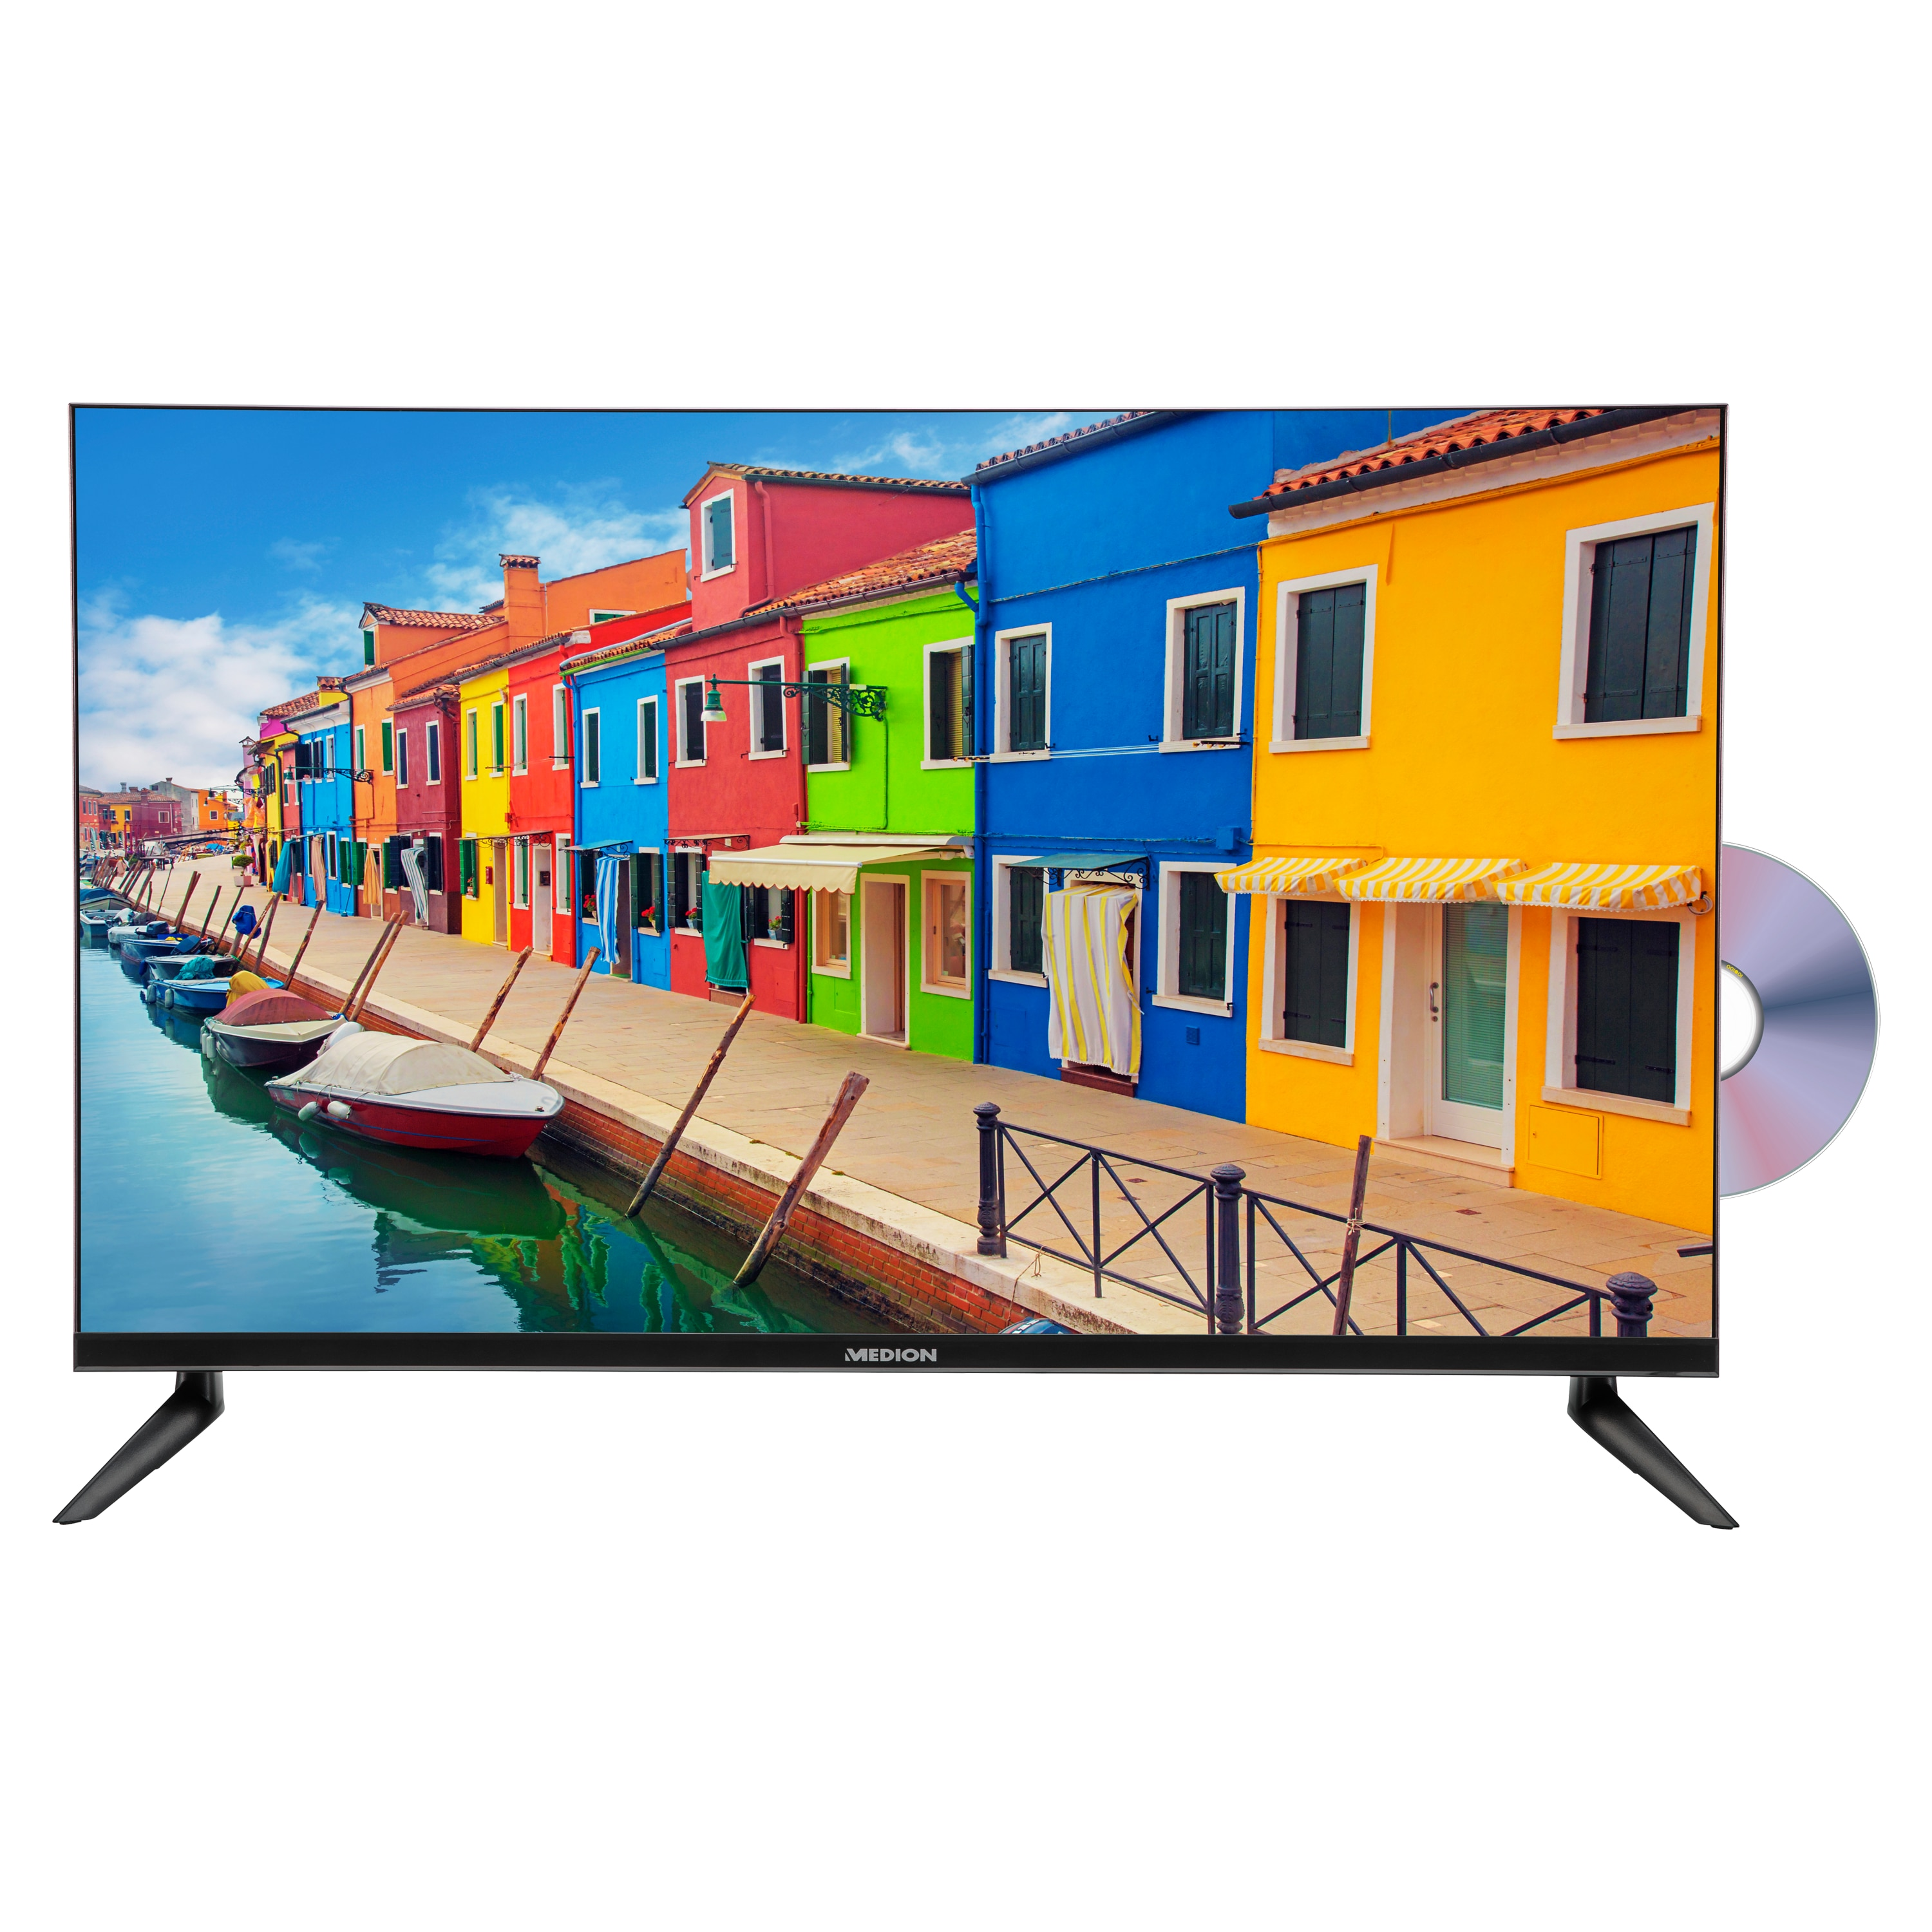 MEDION® LCD-TV LIFE E13212 | 31,5 inch | HD Triple Tuner | DVD-Player | Mediaplayer | CI+